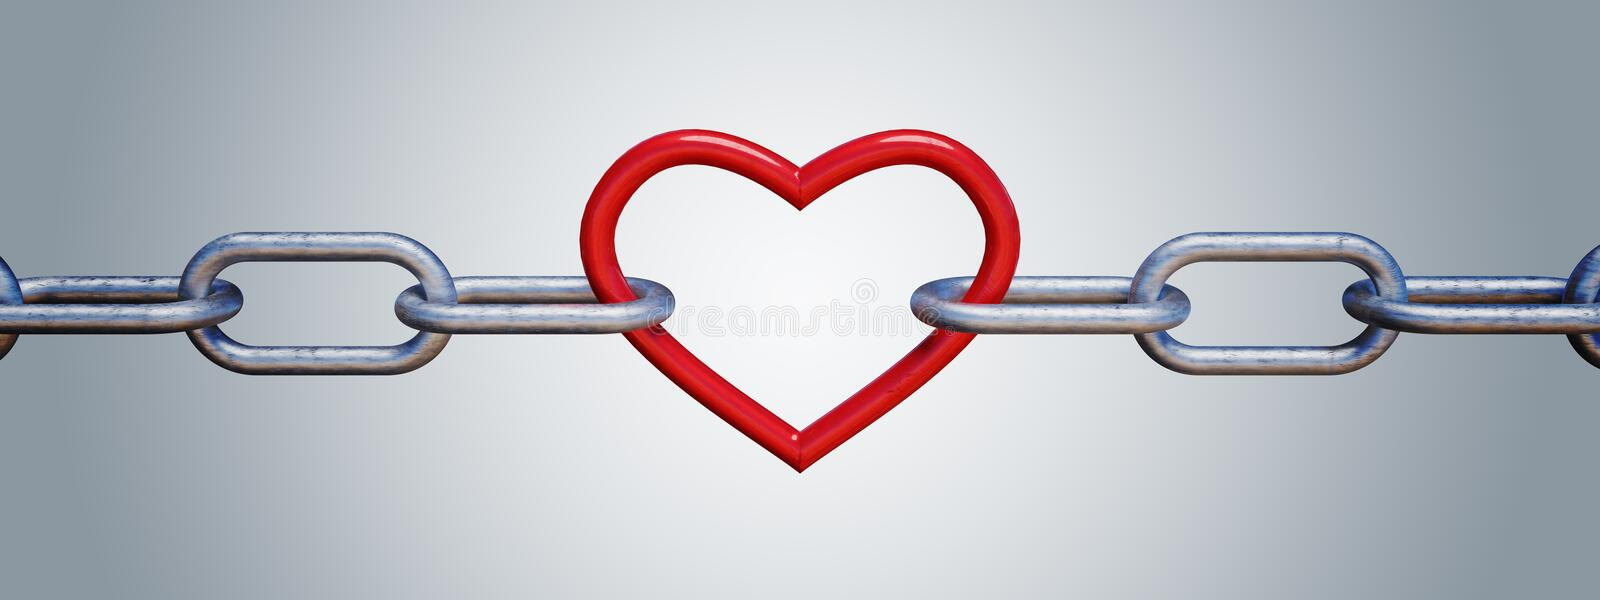 Red metalic heart in chain. 3D rendered illustration.  vector illustration